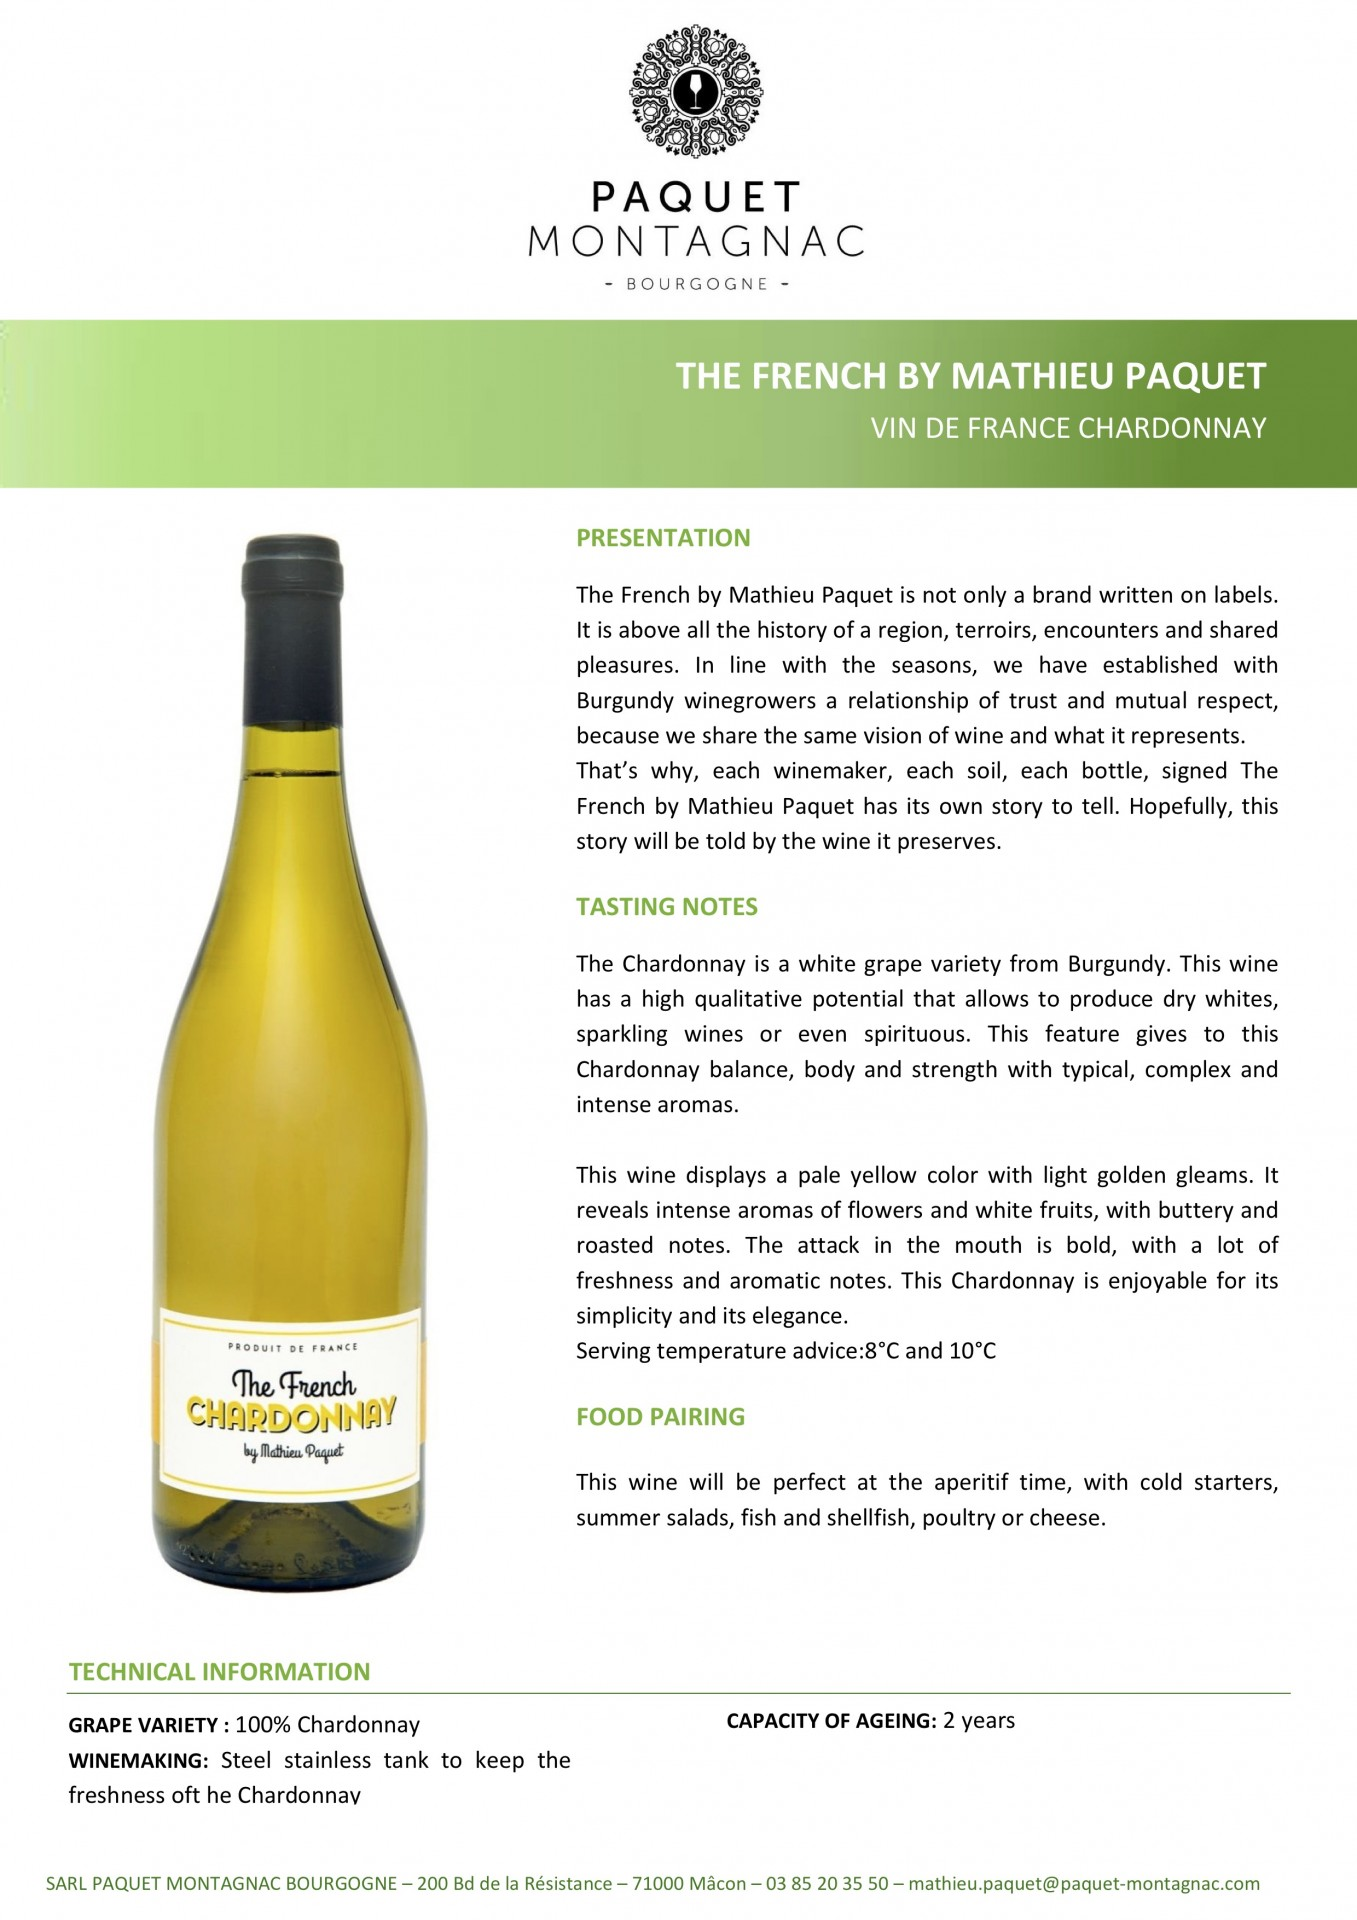 The French Chardonnay